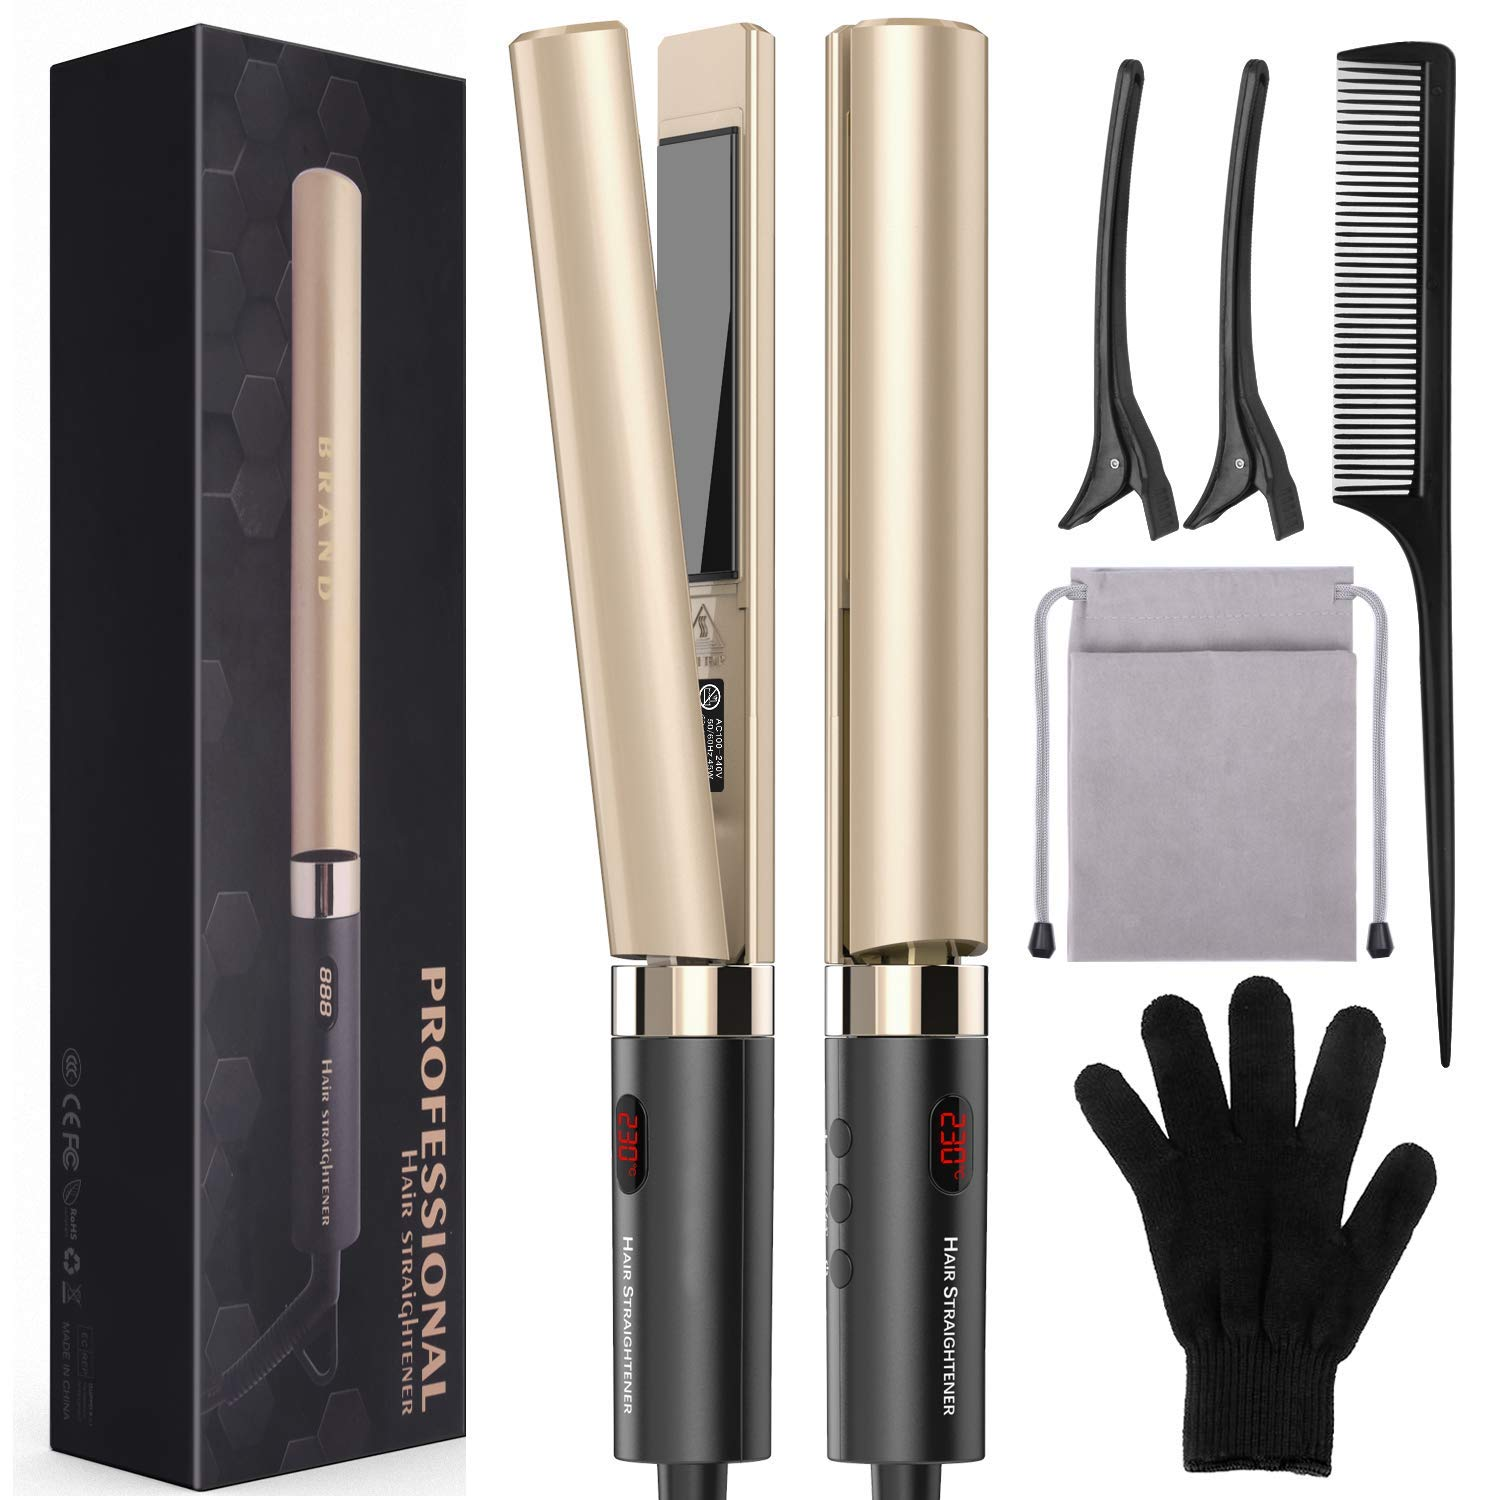 Flat Iron for Hair, Professional Hair Straightener Styling 2 in 1 Tourmaline Ceramic Flat Iron for All Hair Types with Dual Voltage LED Display Adjustable Temperature and Salon High Heat 248-446